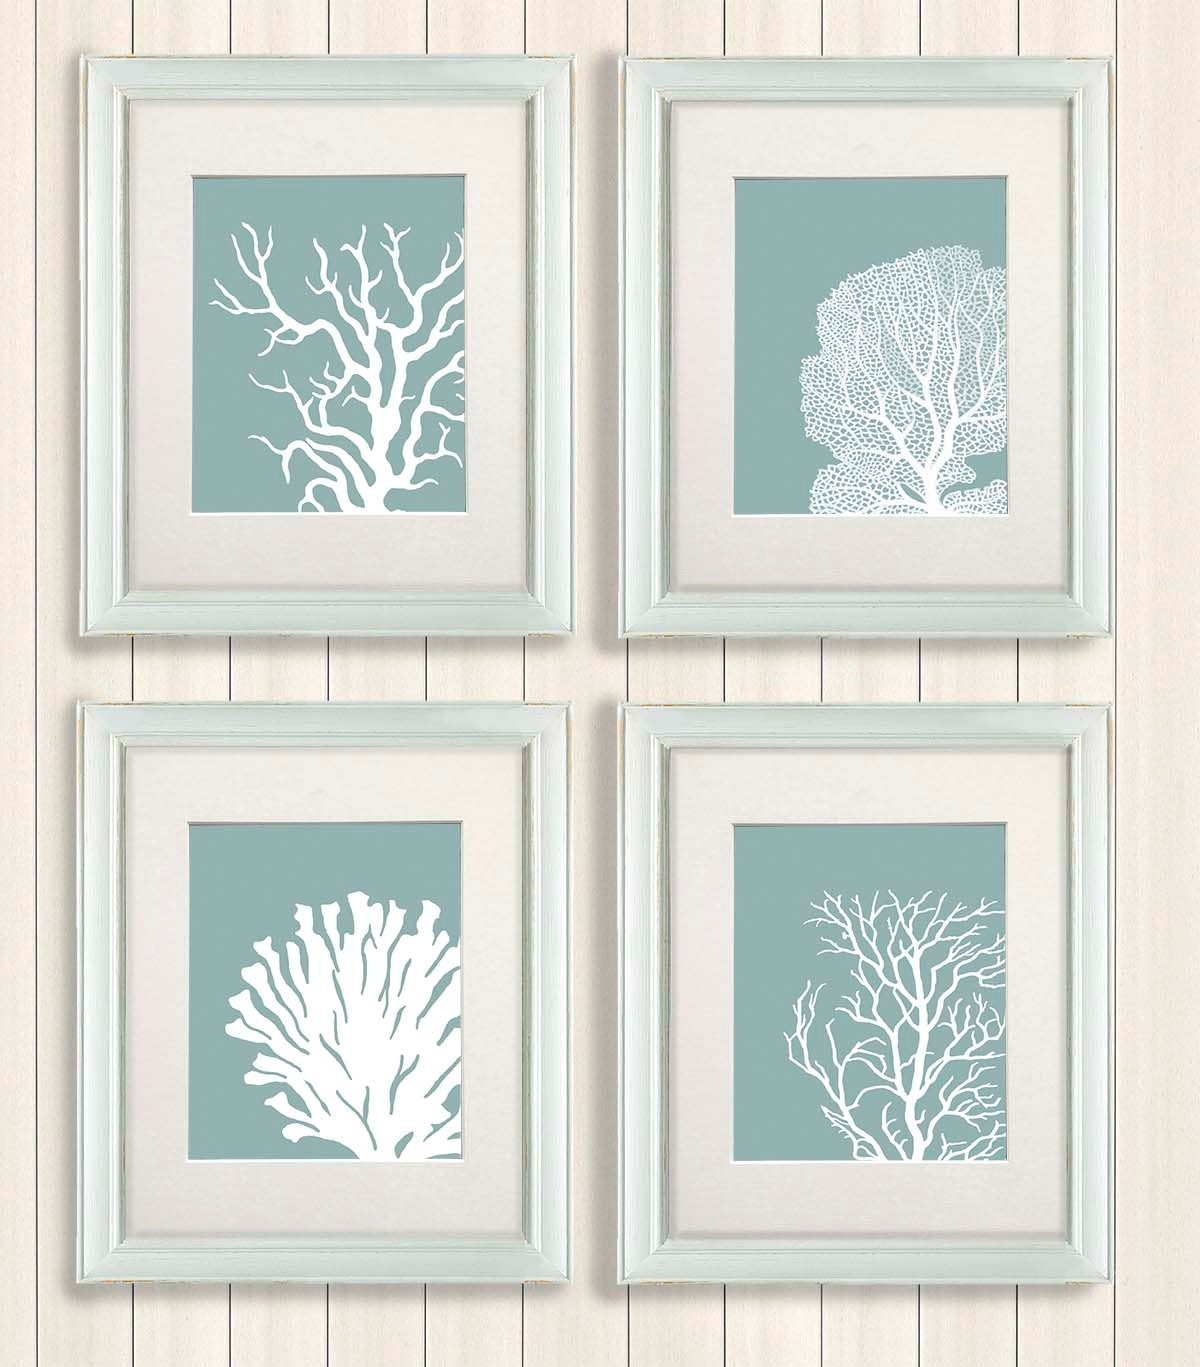 Bathroom Framed Wall Art Popular Items For Green Wall Art On Etsy